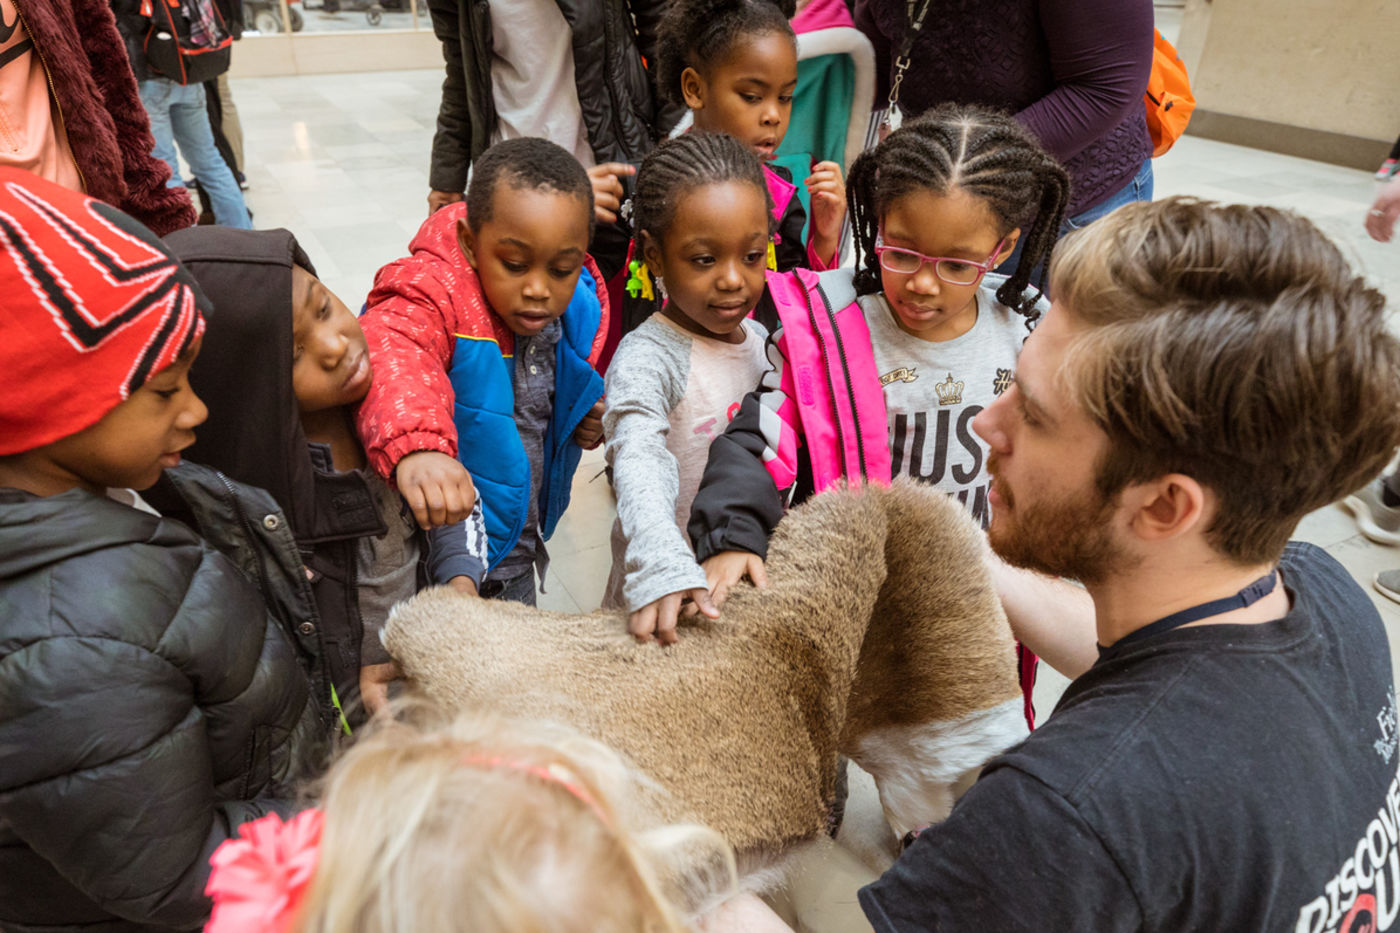 Preschoolers gather around a volunteer and touch a piece of fur he is holding.